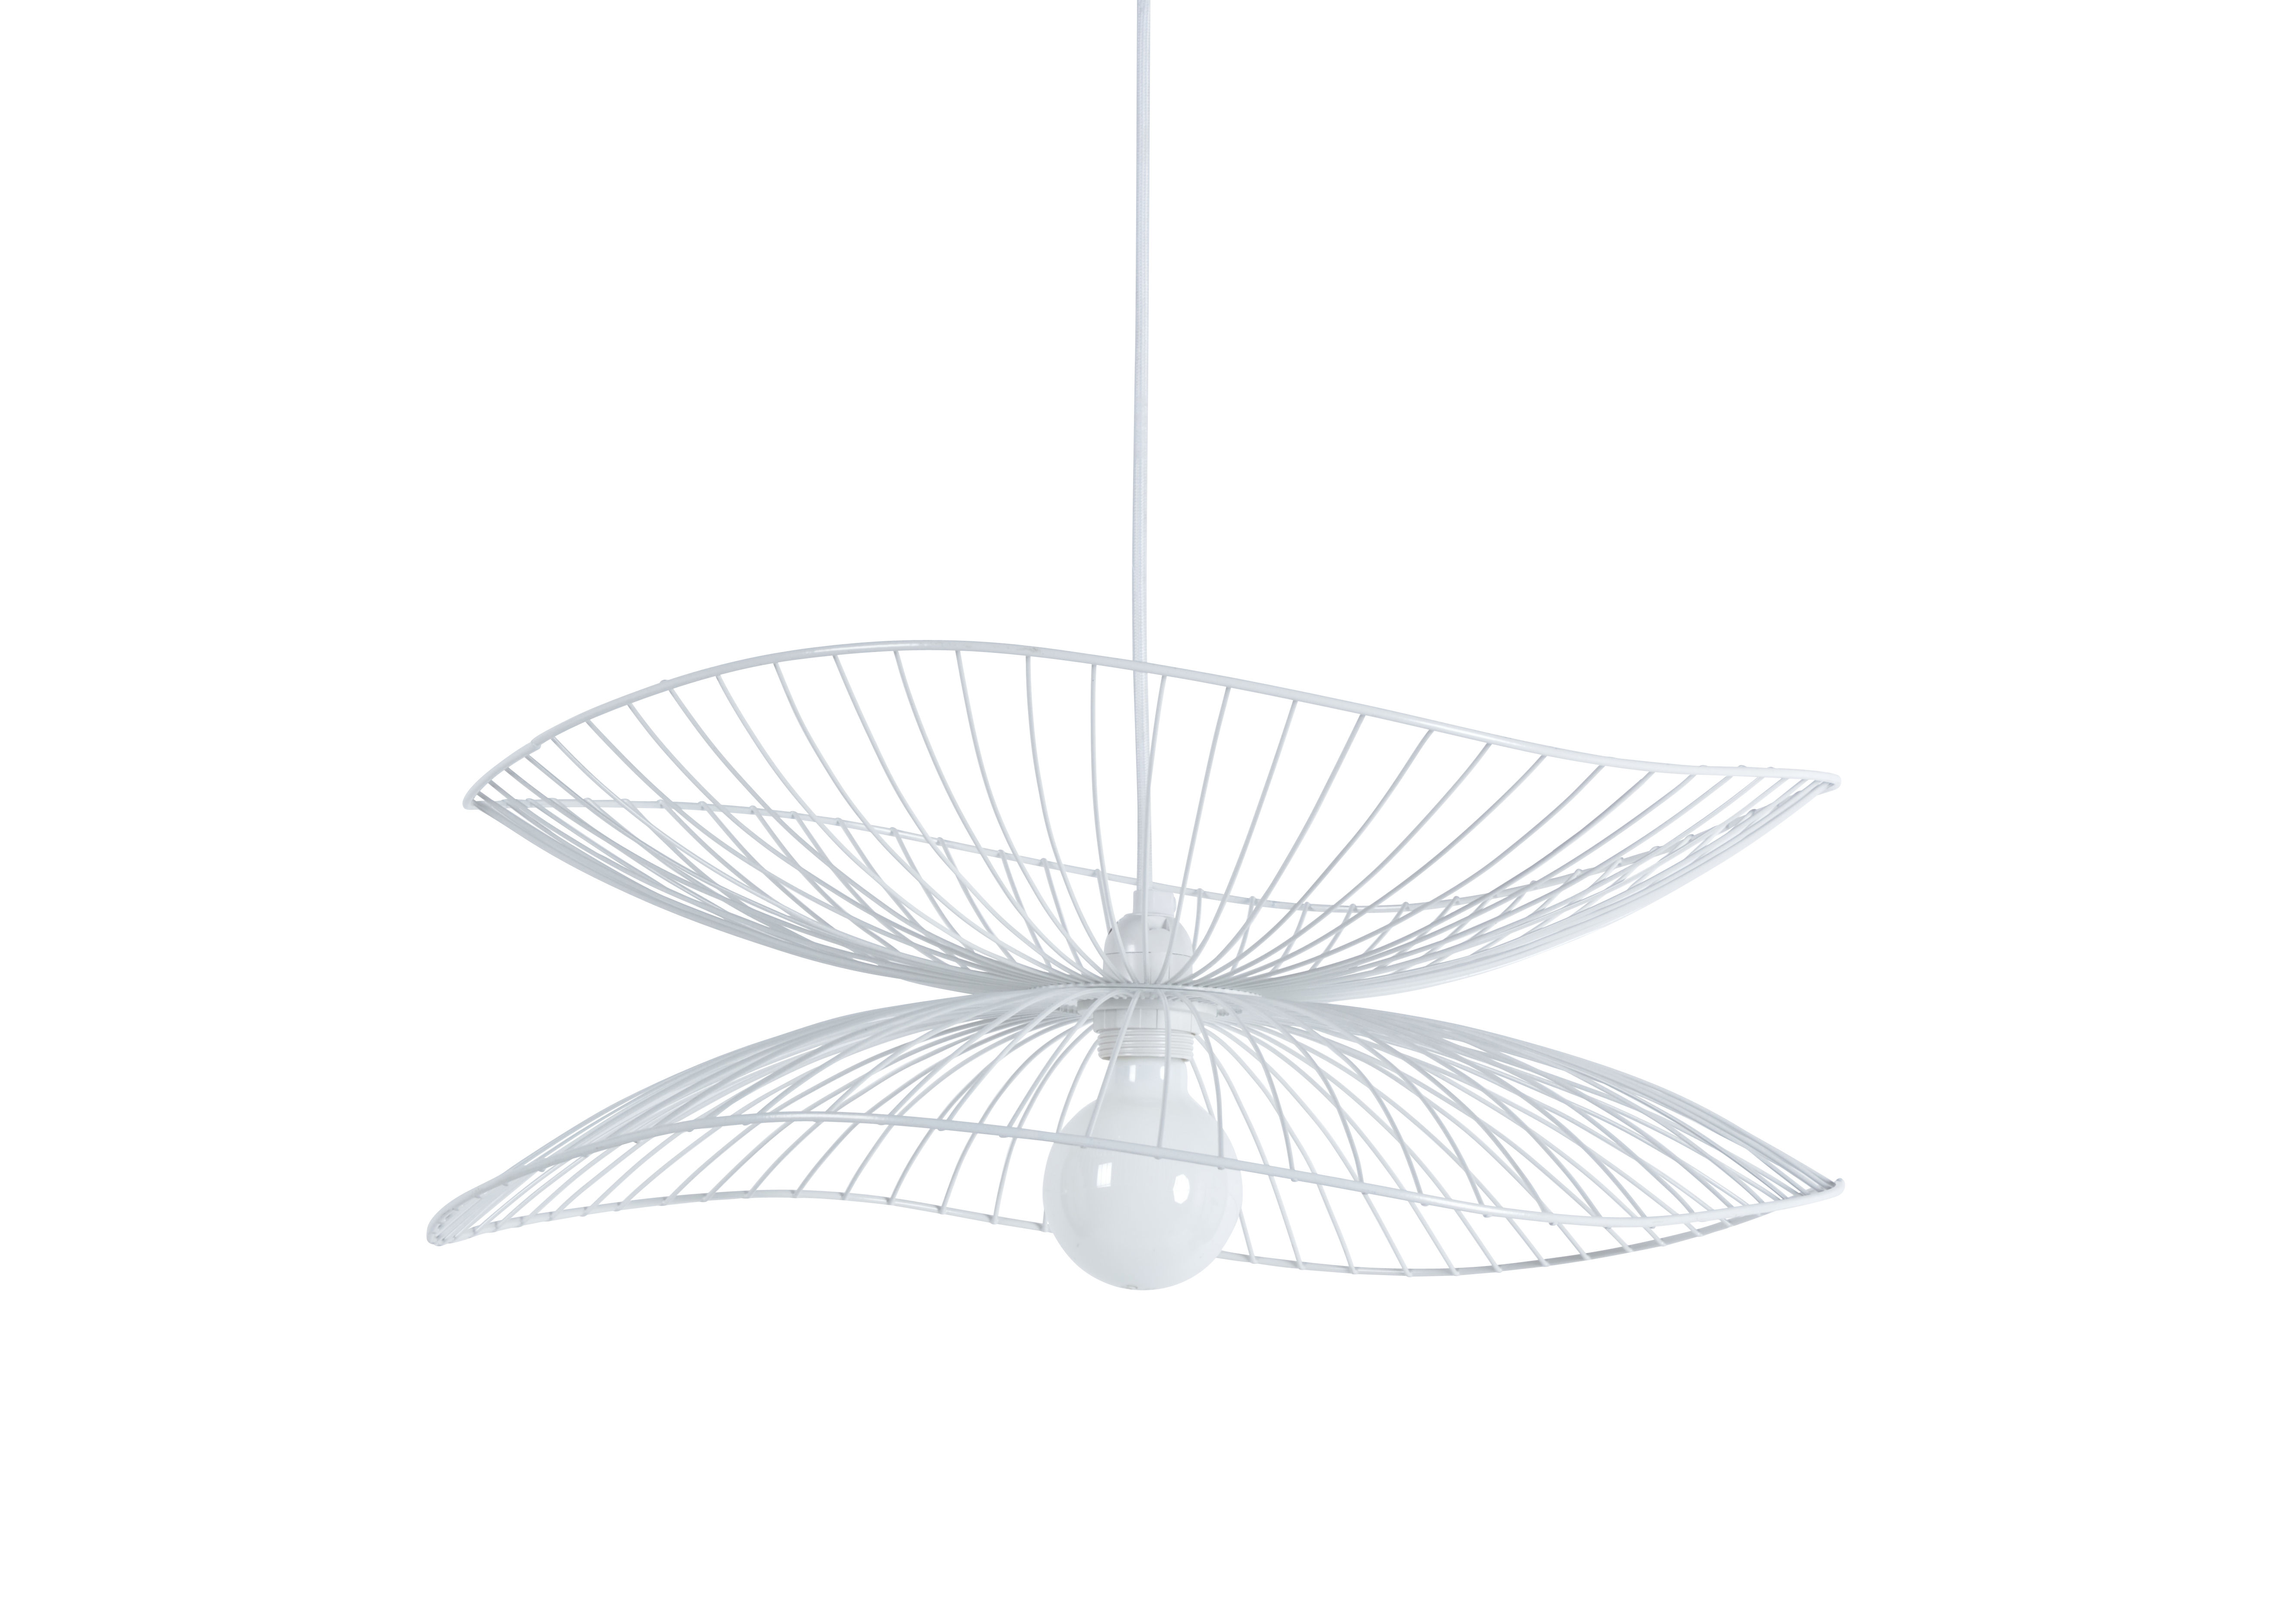 Lighting - Pendant Lighting - Libellule Small Pendant - / Ø 56 x H 20 cm by Forestier - White - Lacquered wire